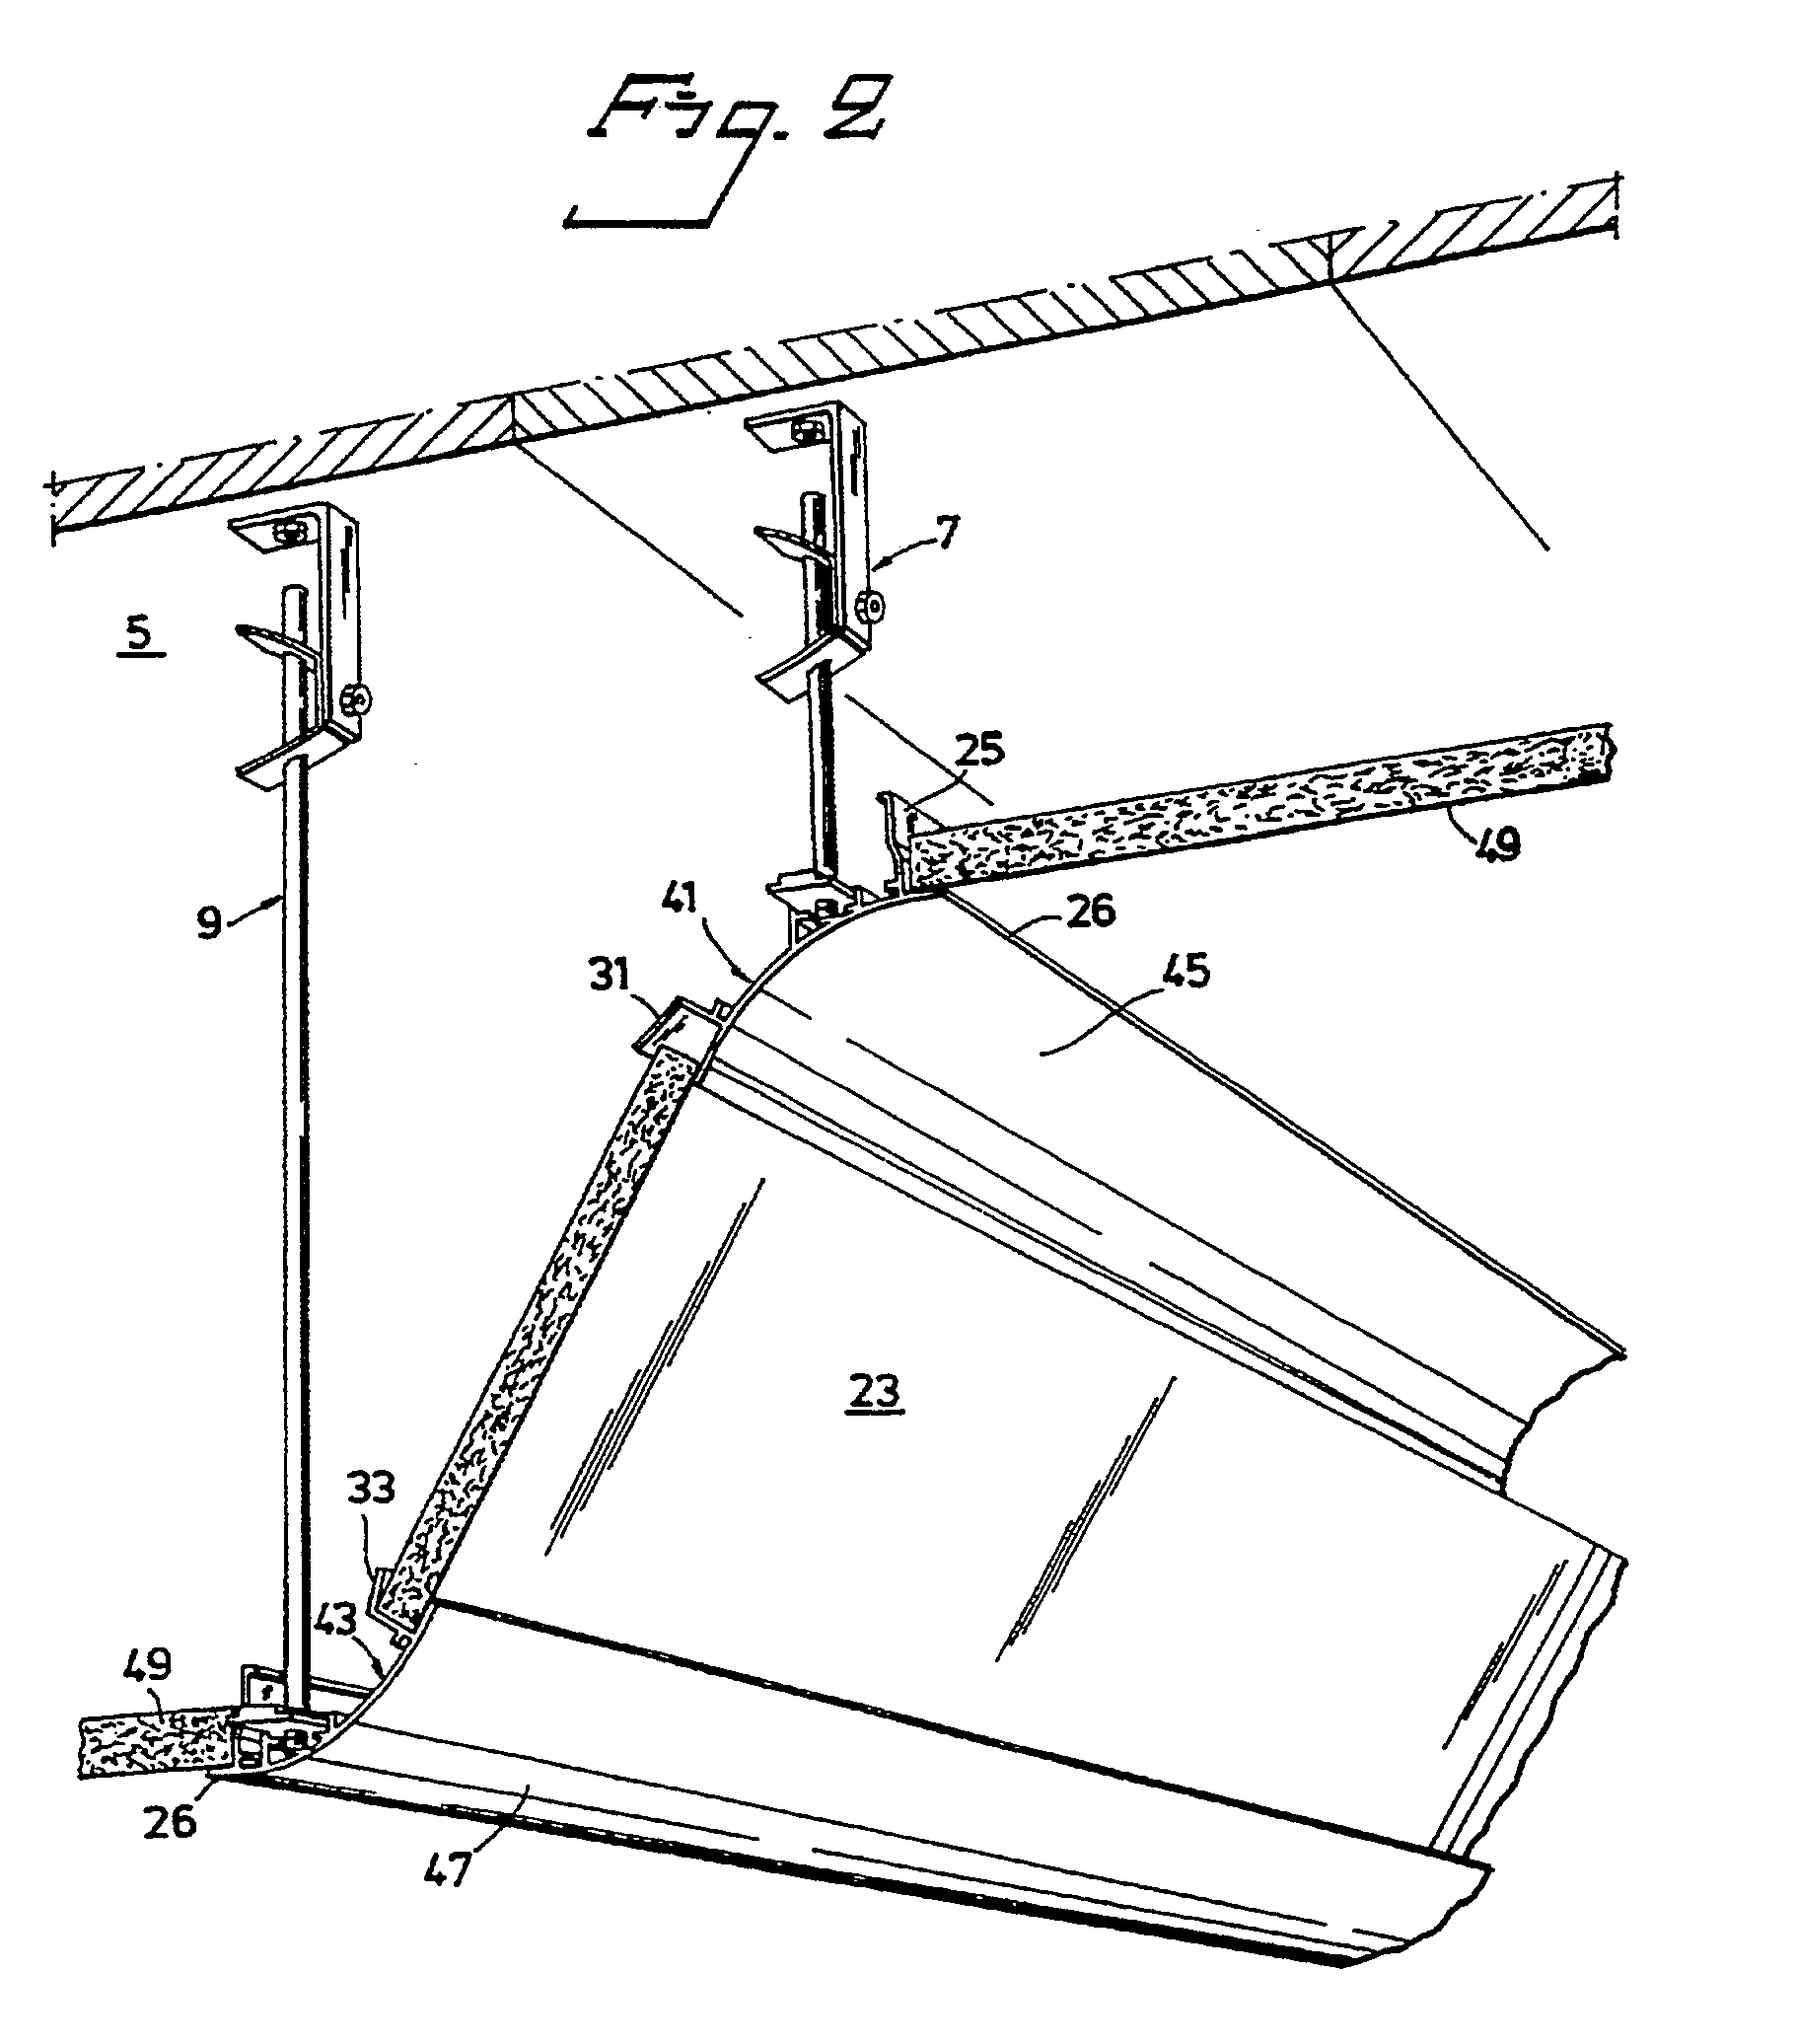 Patent Ep0306463b1 Suspended Ceiling Structure Google